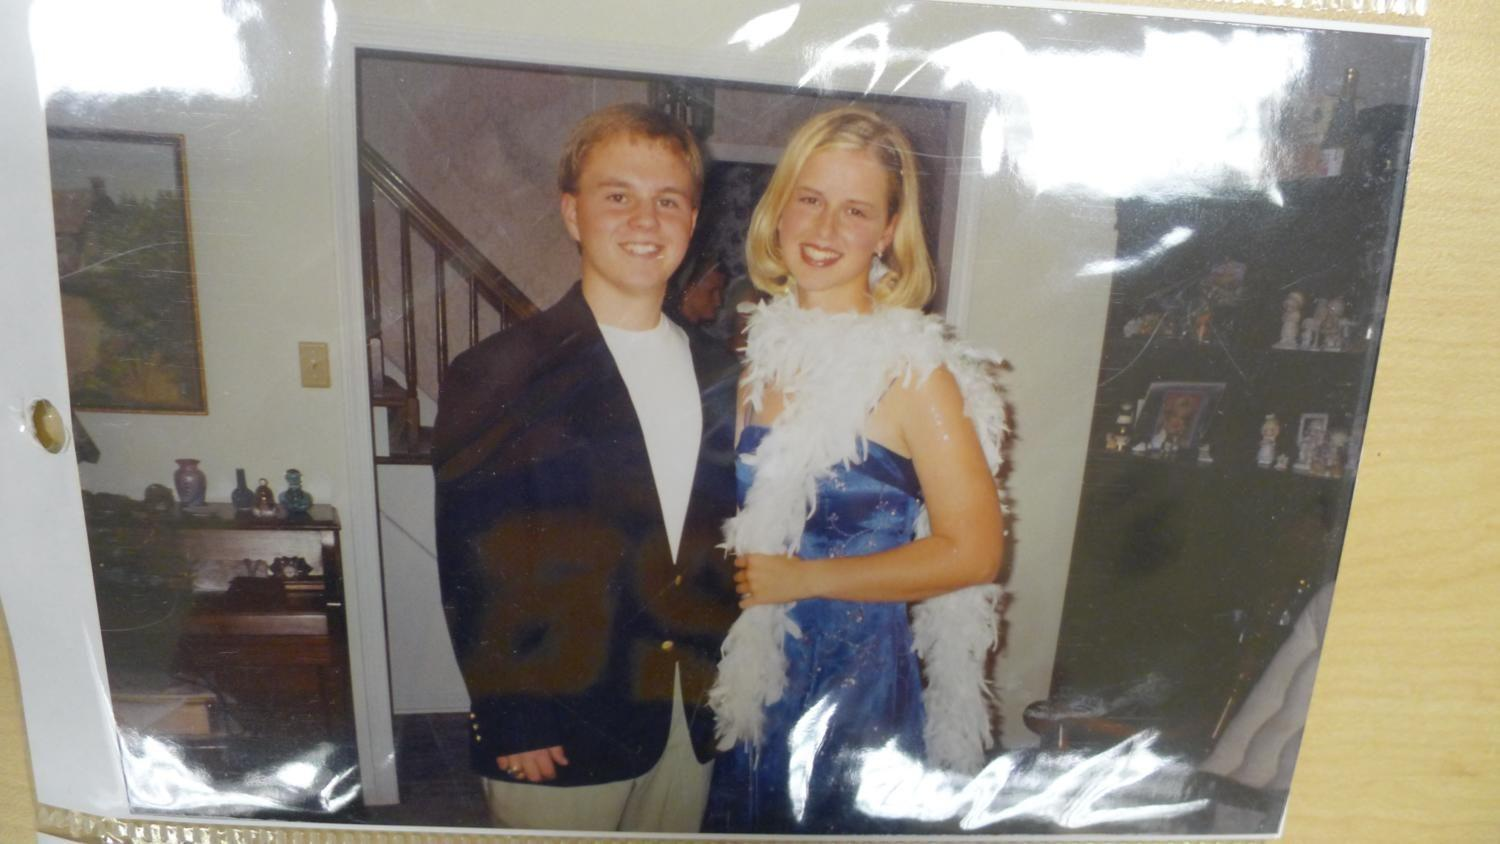 Kelly shares photos of her homecoming experience. Now a social studies teacher, Kelly is also a CHS grad from the class of 2001.